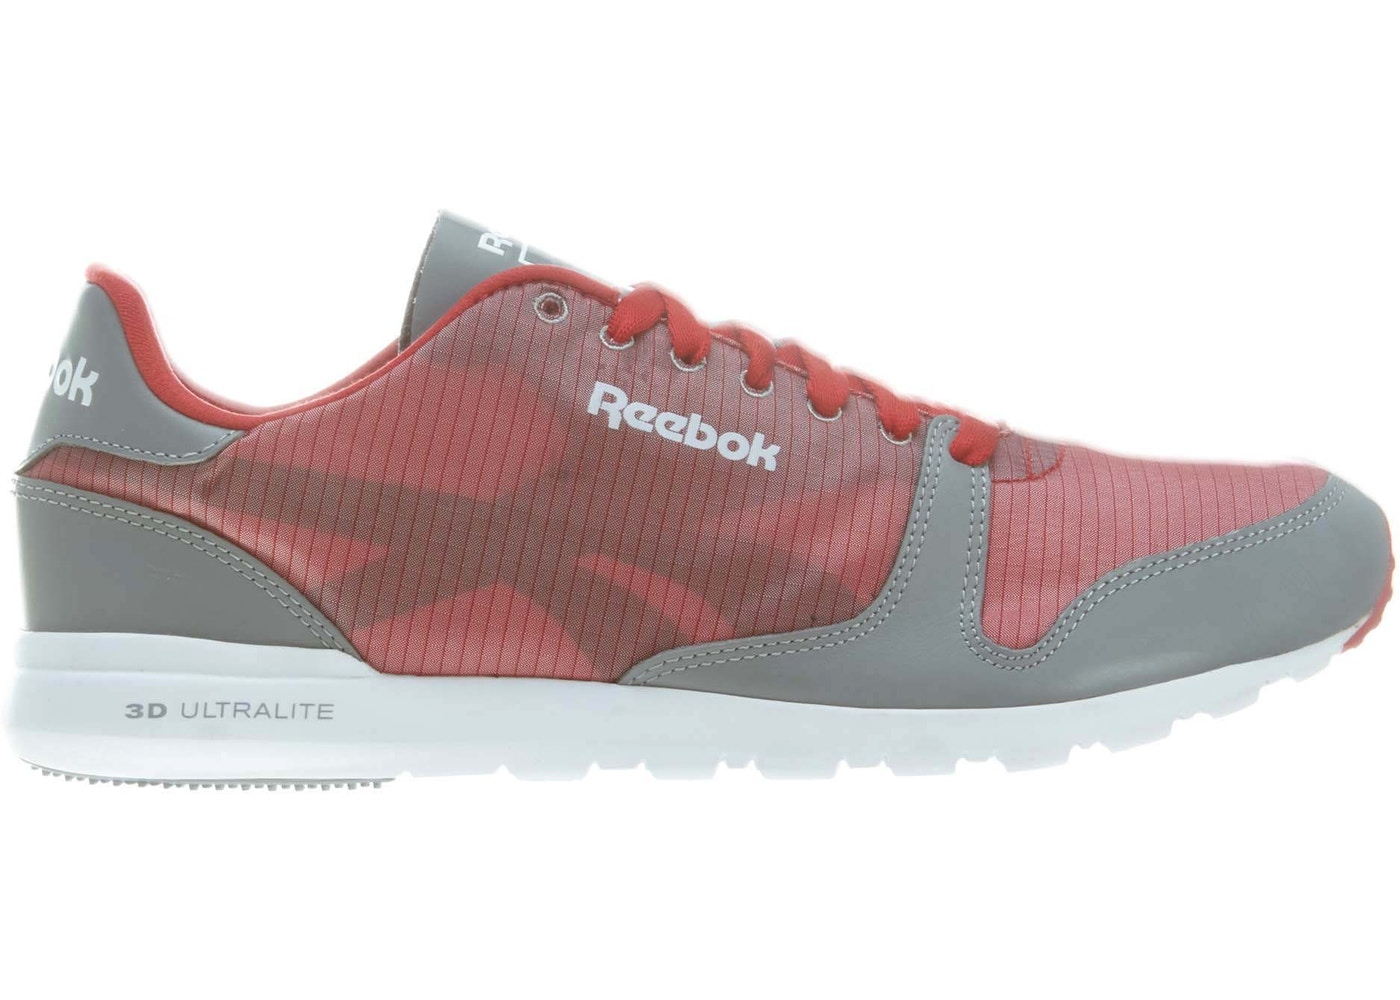 6aecb36550dd84 Buy Reebok Size 13 Shoes   Deadstock Sneakers